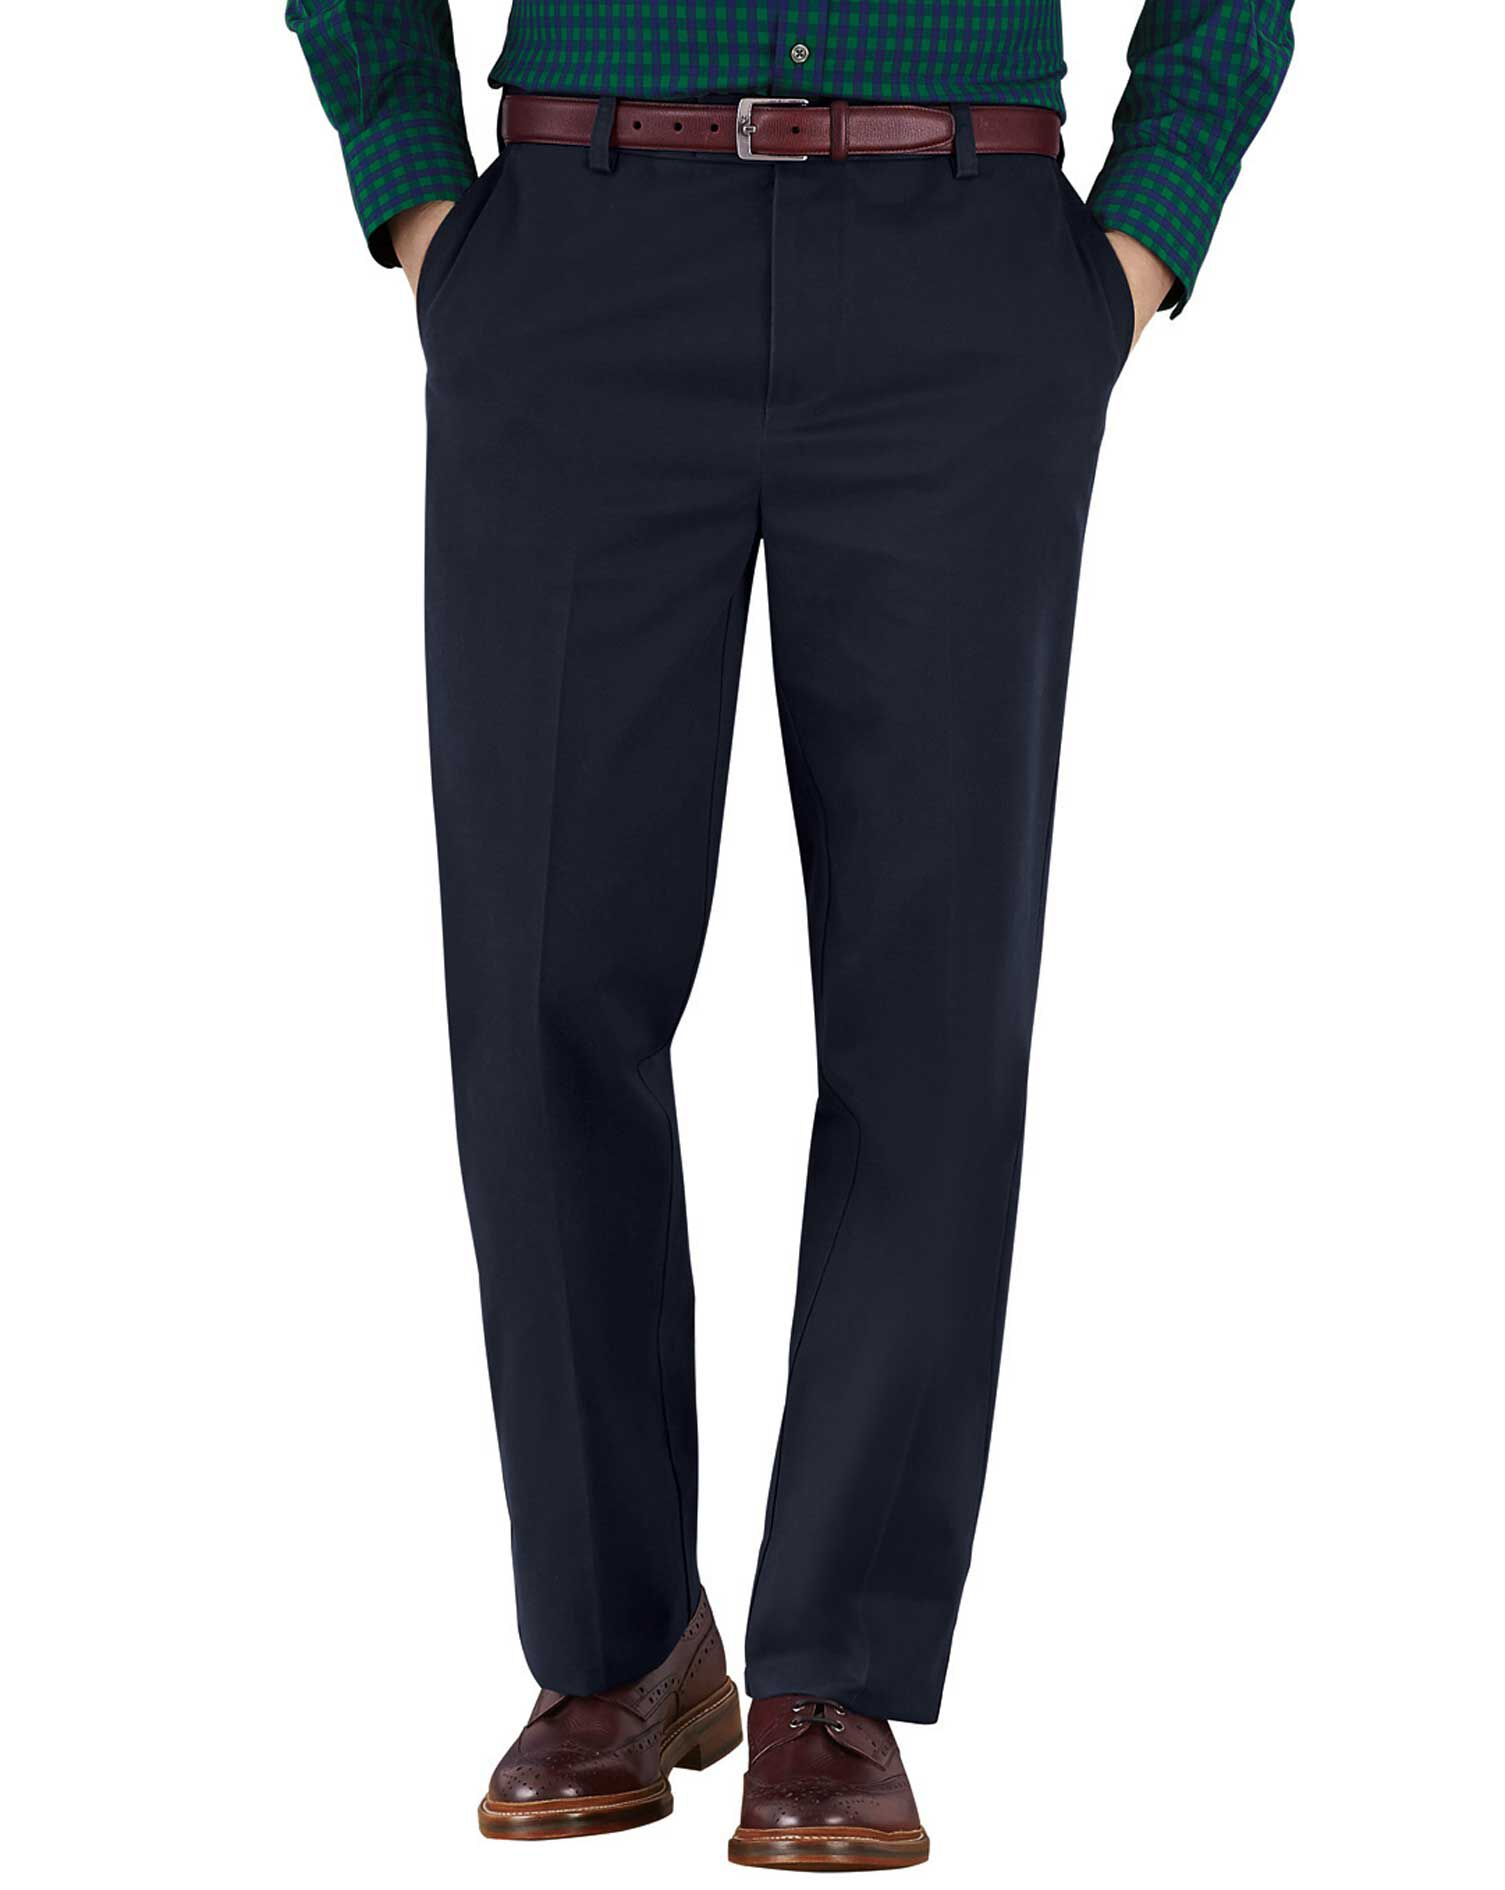 Navy Classic Fit Flat Front Non-Iron Cotton Chino Trousers Size W42 L38 by Charles Tyrwhitt